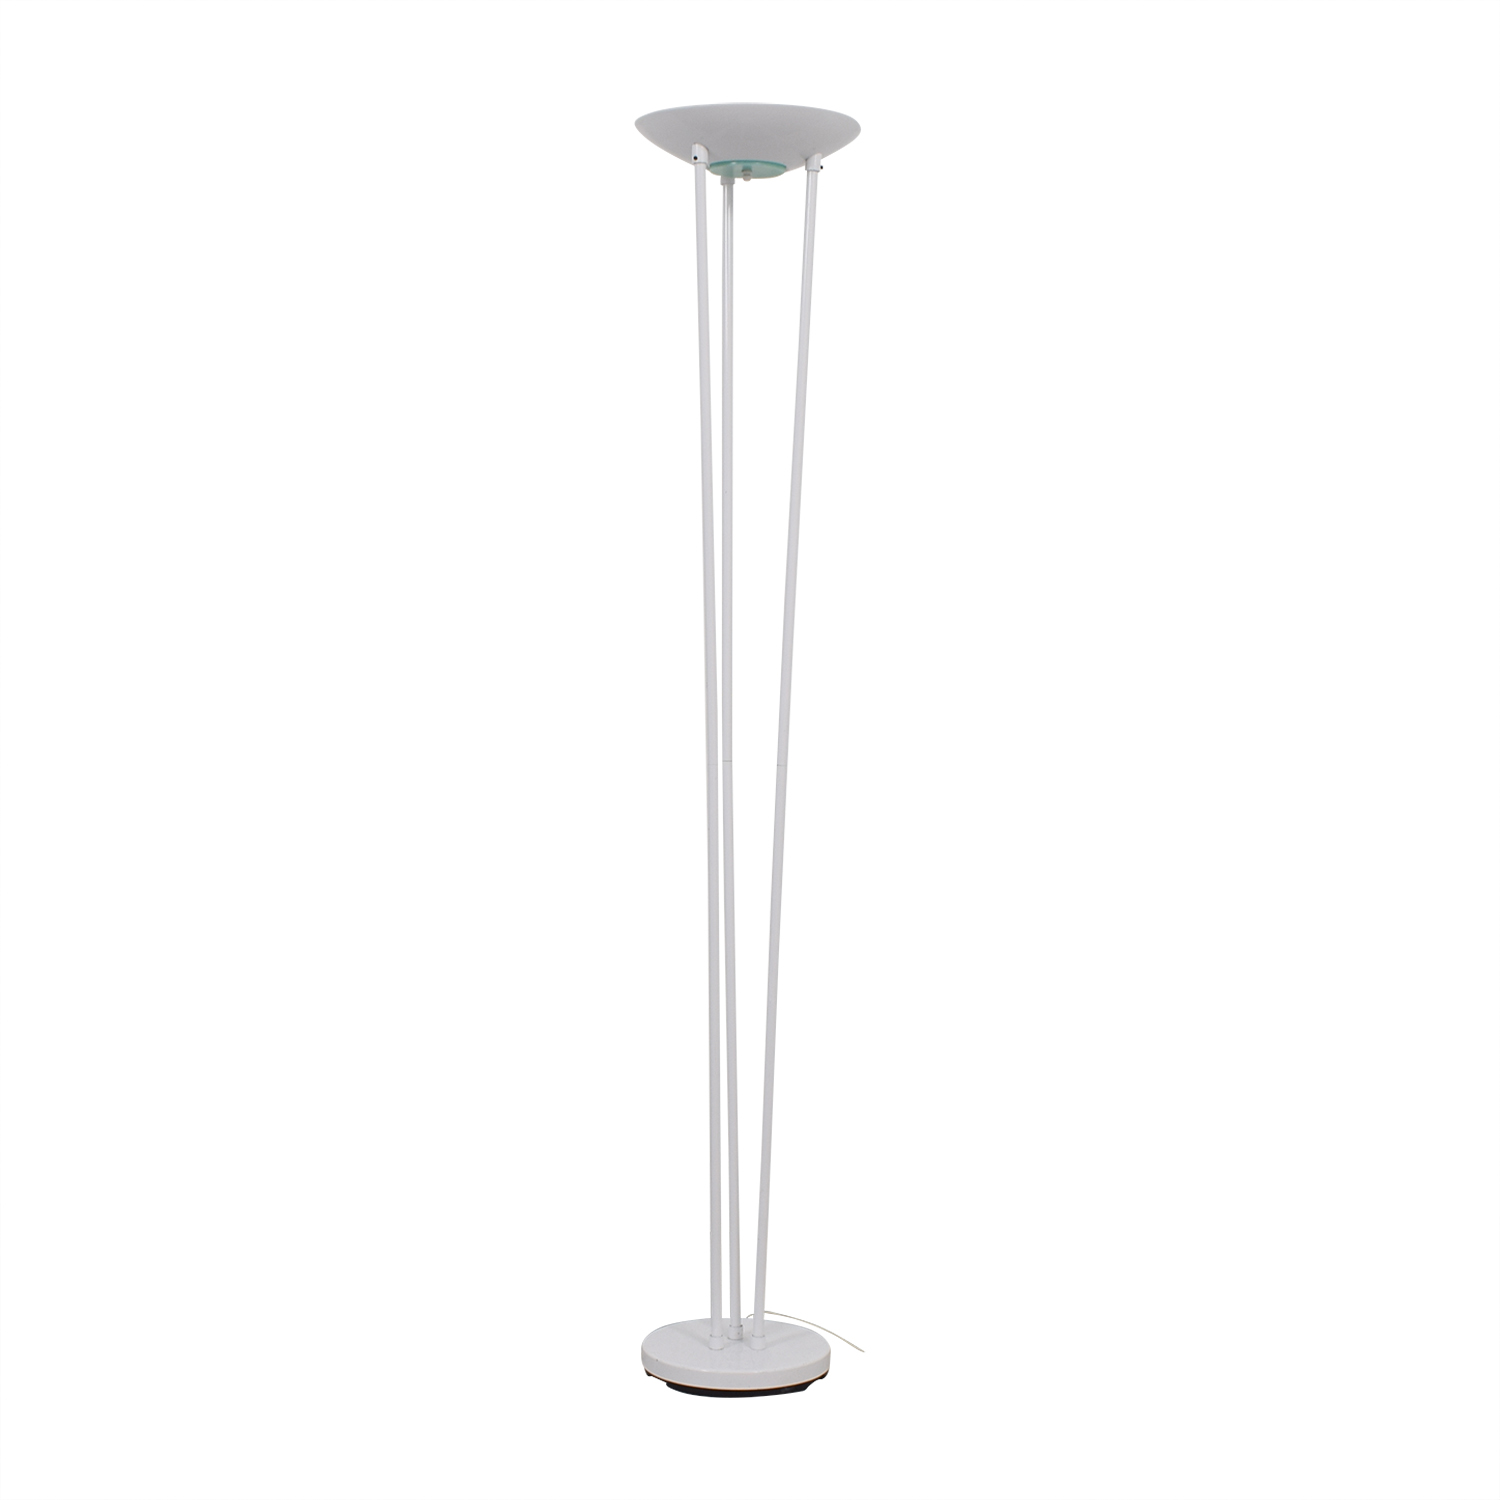 buy Torchiere Torchiere Classic White Halogen Floor Lamp online